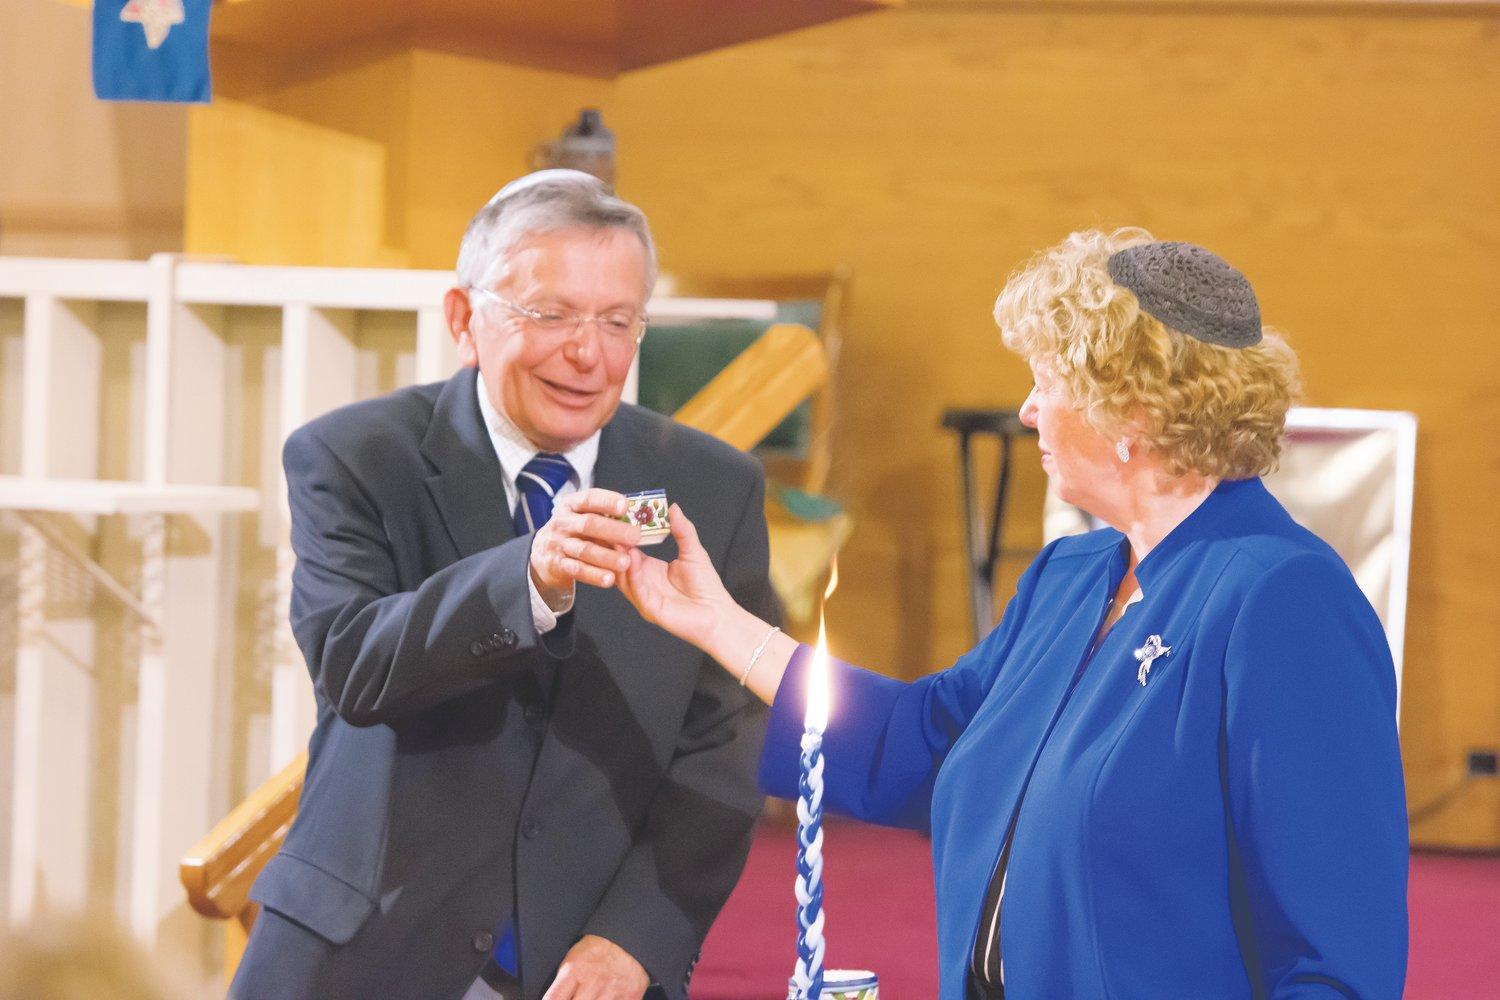 Rabbi Boaz Heilman, left, accepts a cup of wine from his wife, Rabbi Sally Finestone, during his formal installation as Rabbi of Westminster's Congregation B'nai Torah Nov. 9. Heilman succeeds Rabbi Anat Moskowitz, who moved to Florida for health reasons.